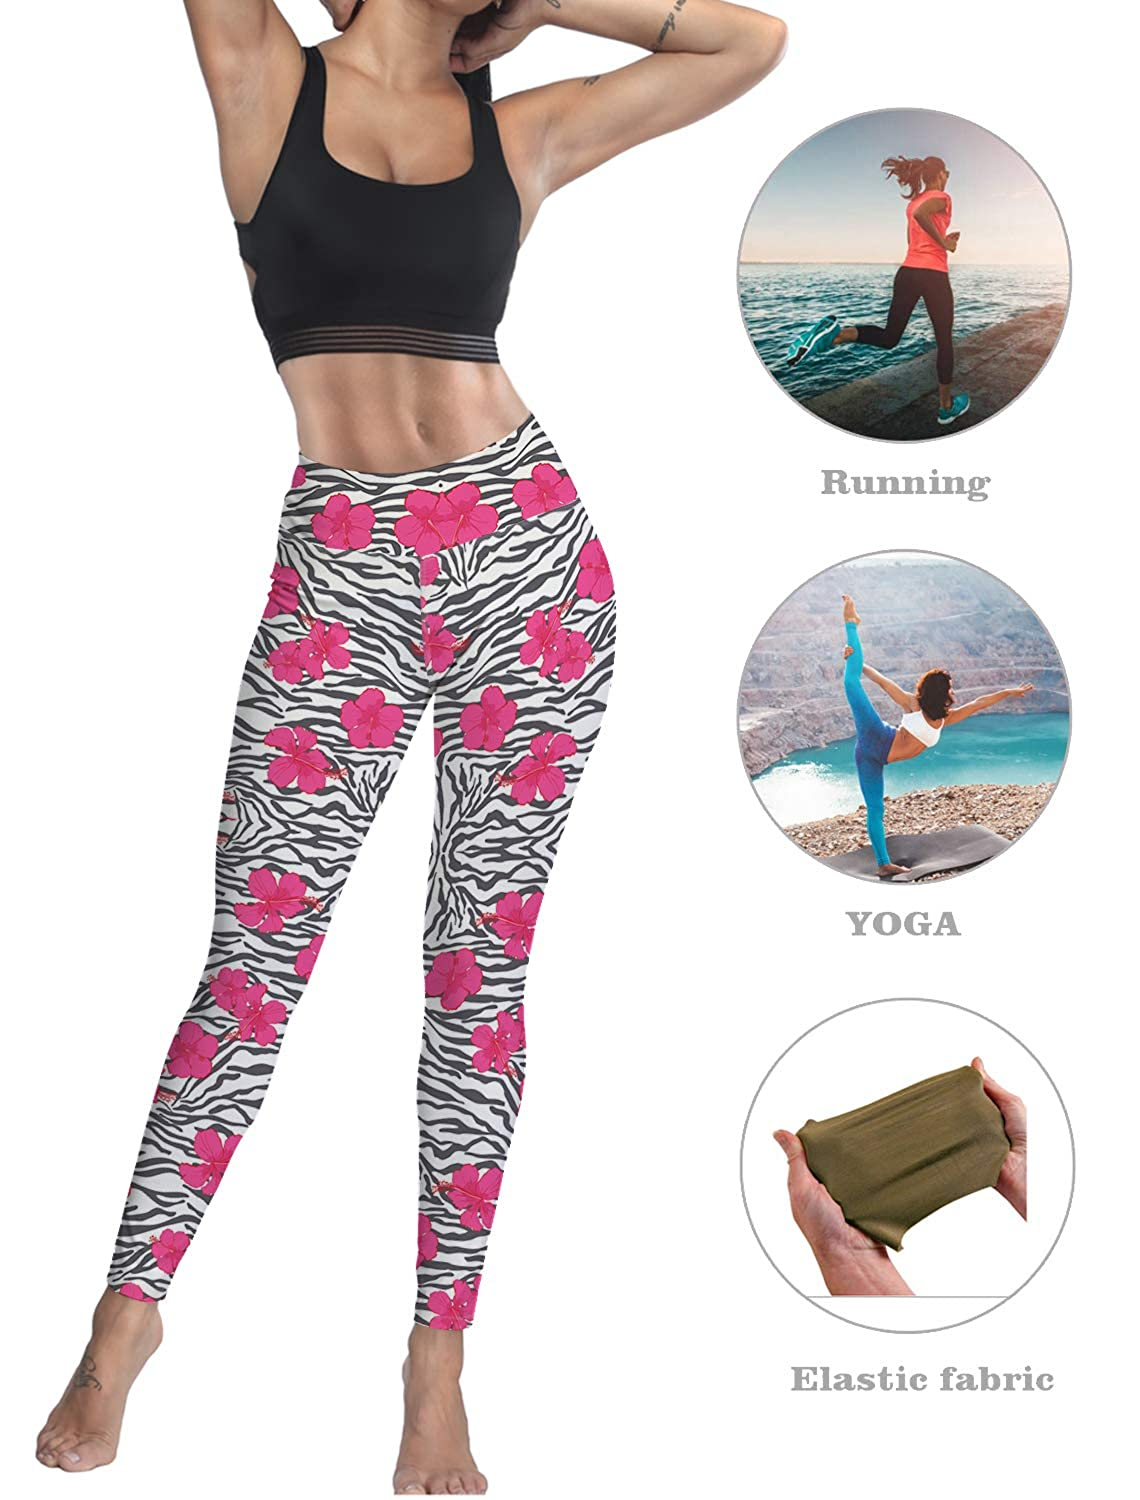 Womens Yoga Pants Workout Leggings High Waisted Capris Tummy Control Gym Running Leggings Animal Leopard Print with Flowers